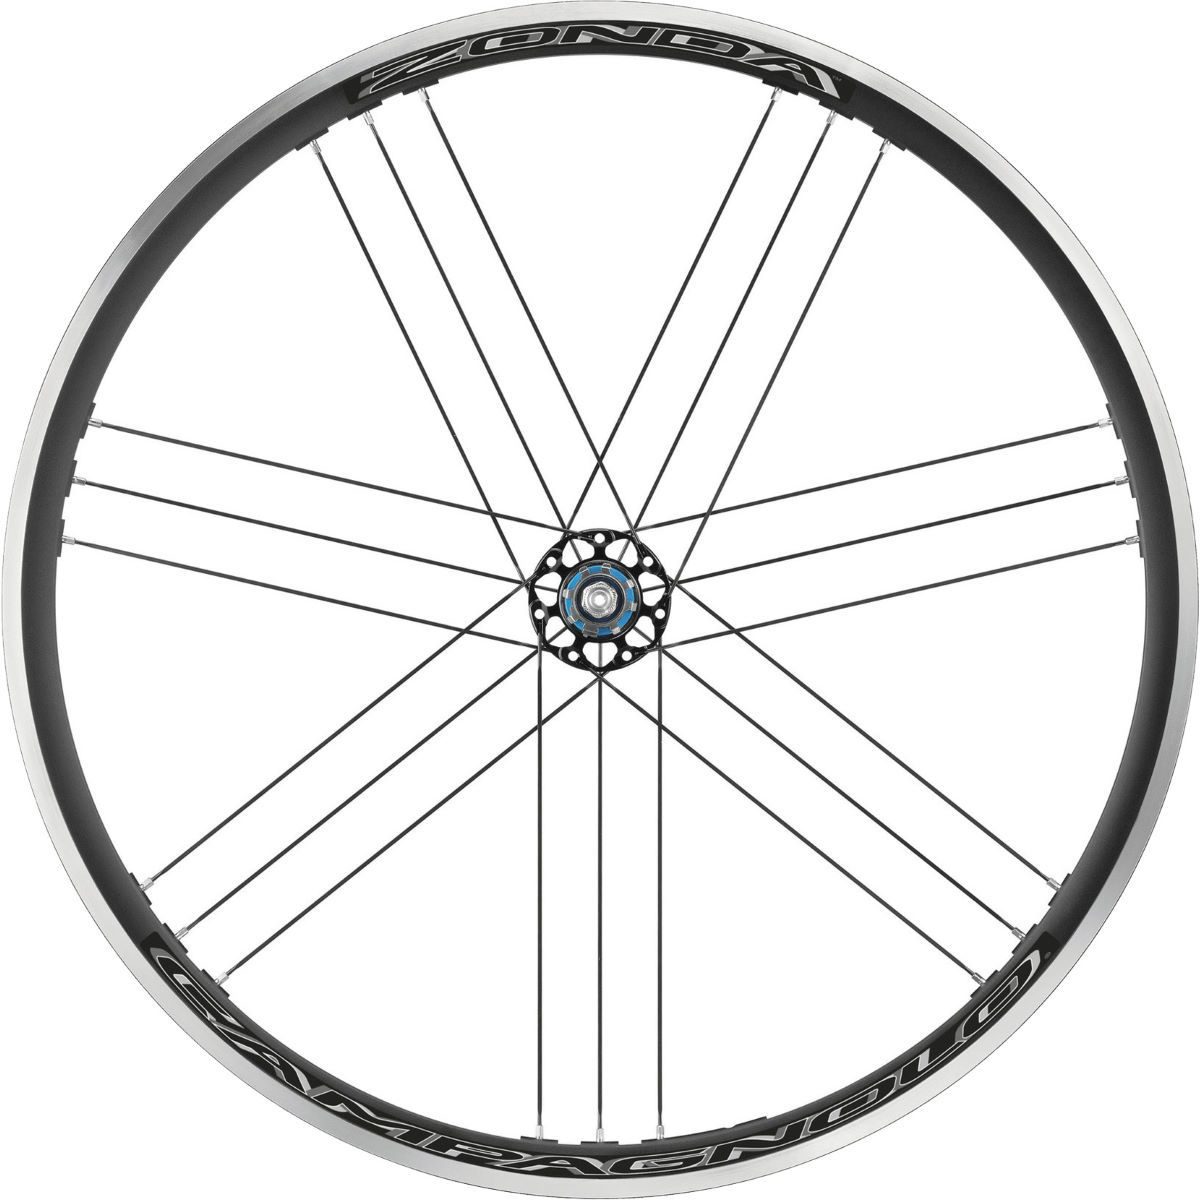 Campagnolo Zonda C17 Rear Road Wheel - Ruedas de competición